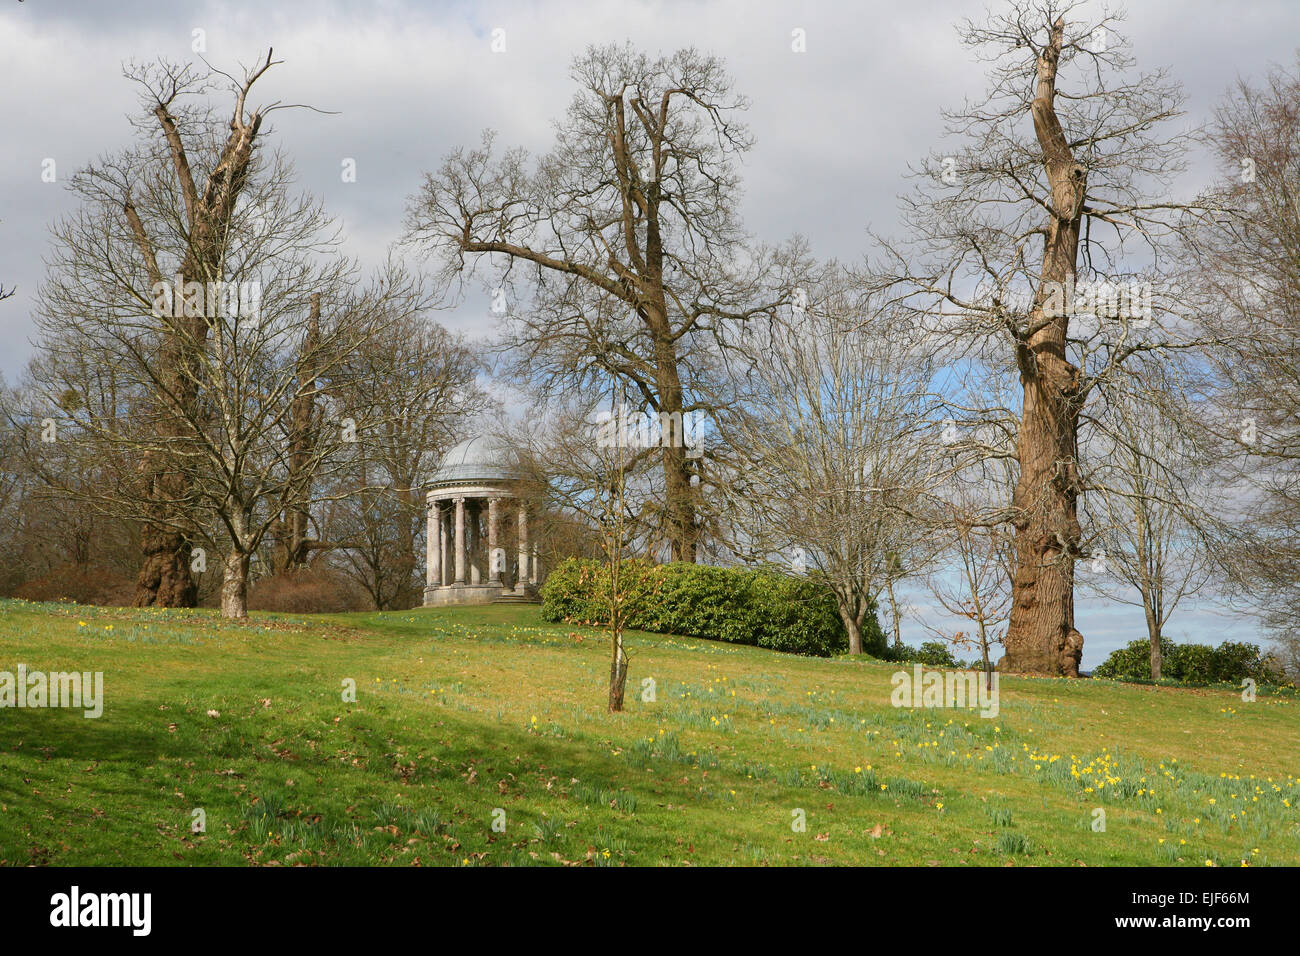 The Ionic Rotunda surrounded by daffodils in the Pleasure Grounds at Petworth in the Spring - Stock Image